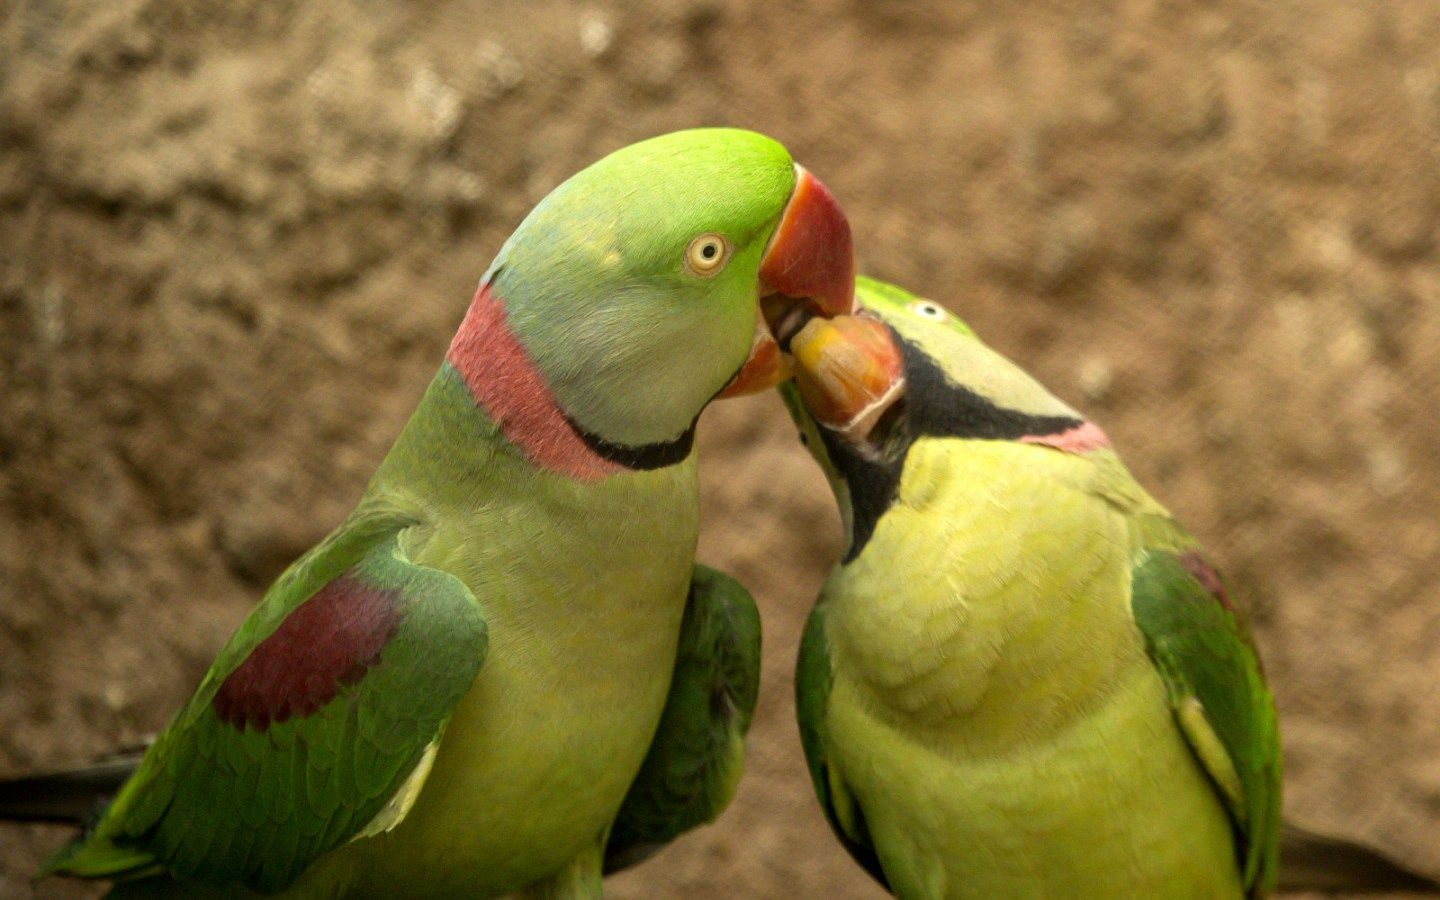 Parrot Birds Zoo Wildlife Photography Hd Wallpaper And Background Images Digital Art Photography Selling Paintings Love Couple Wallpaper